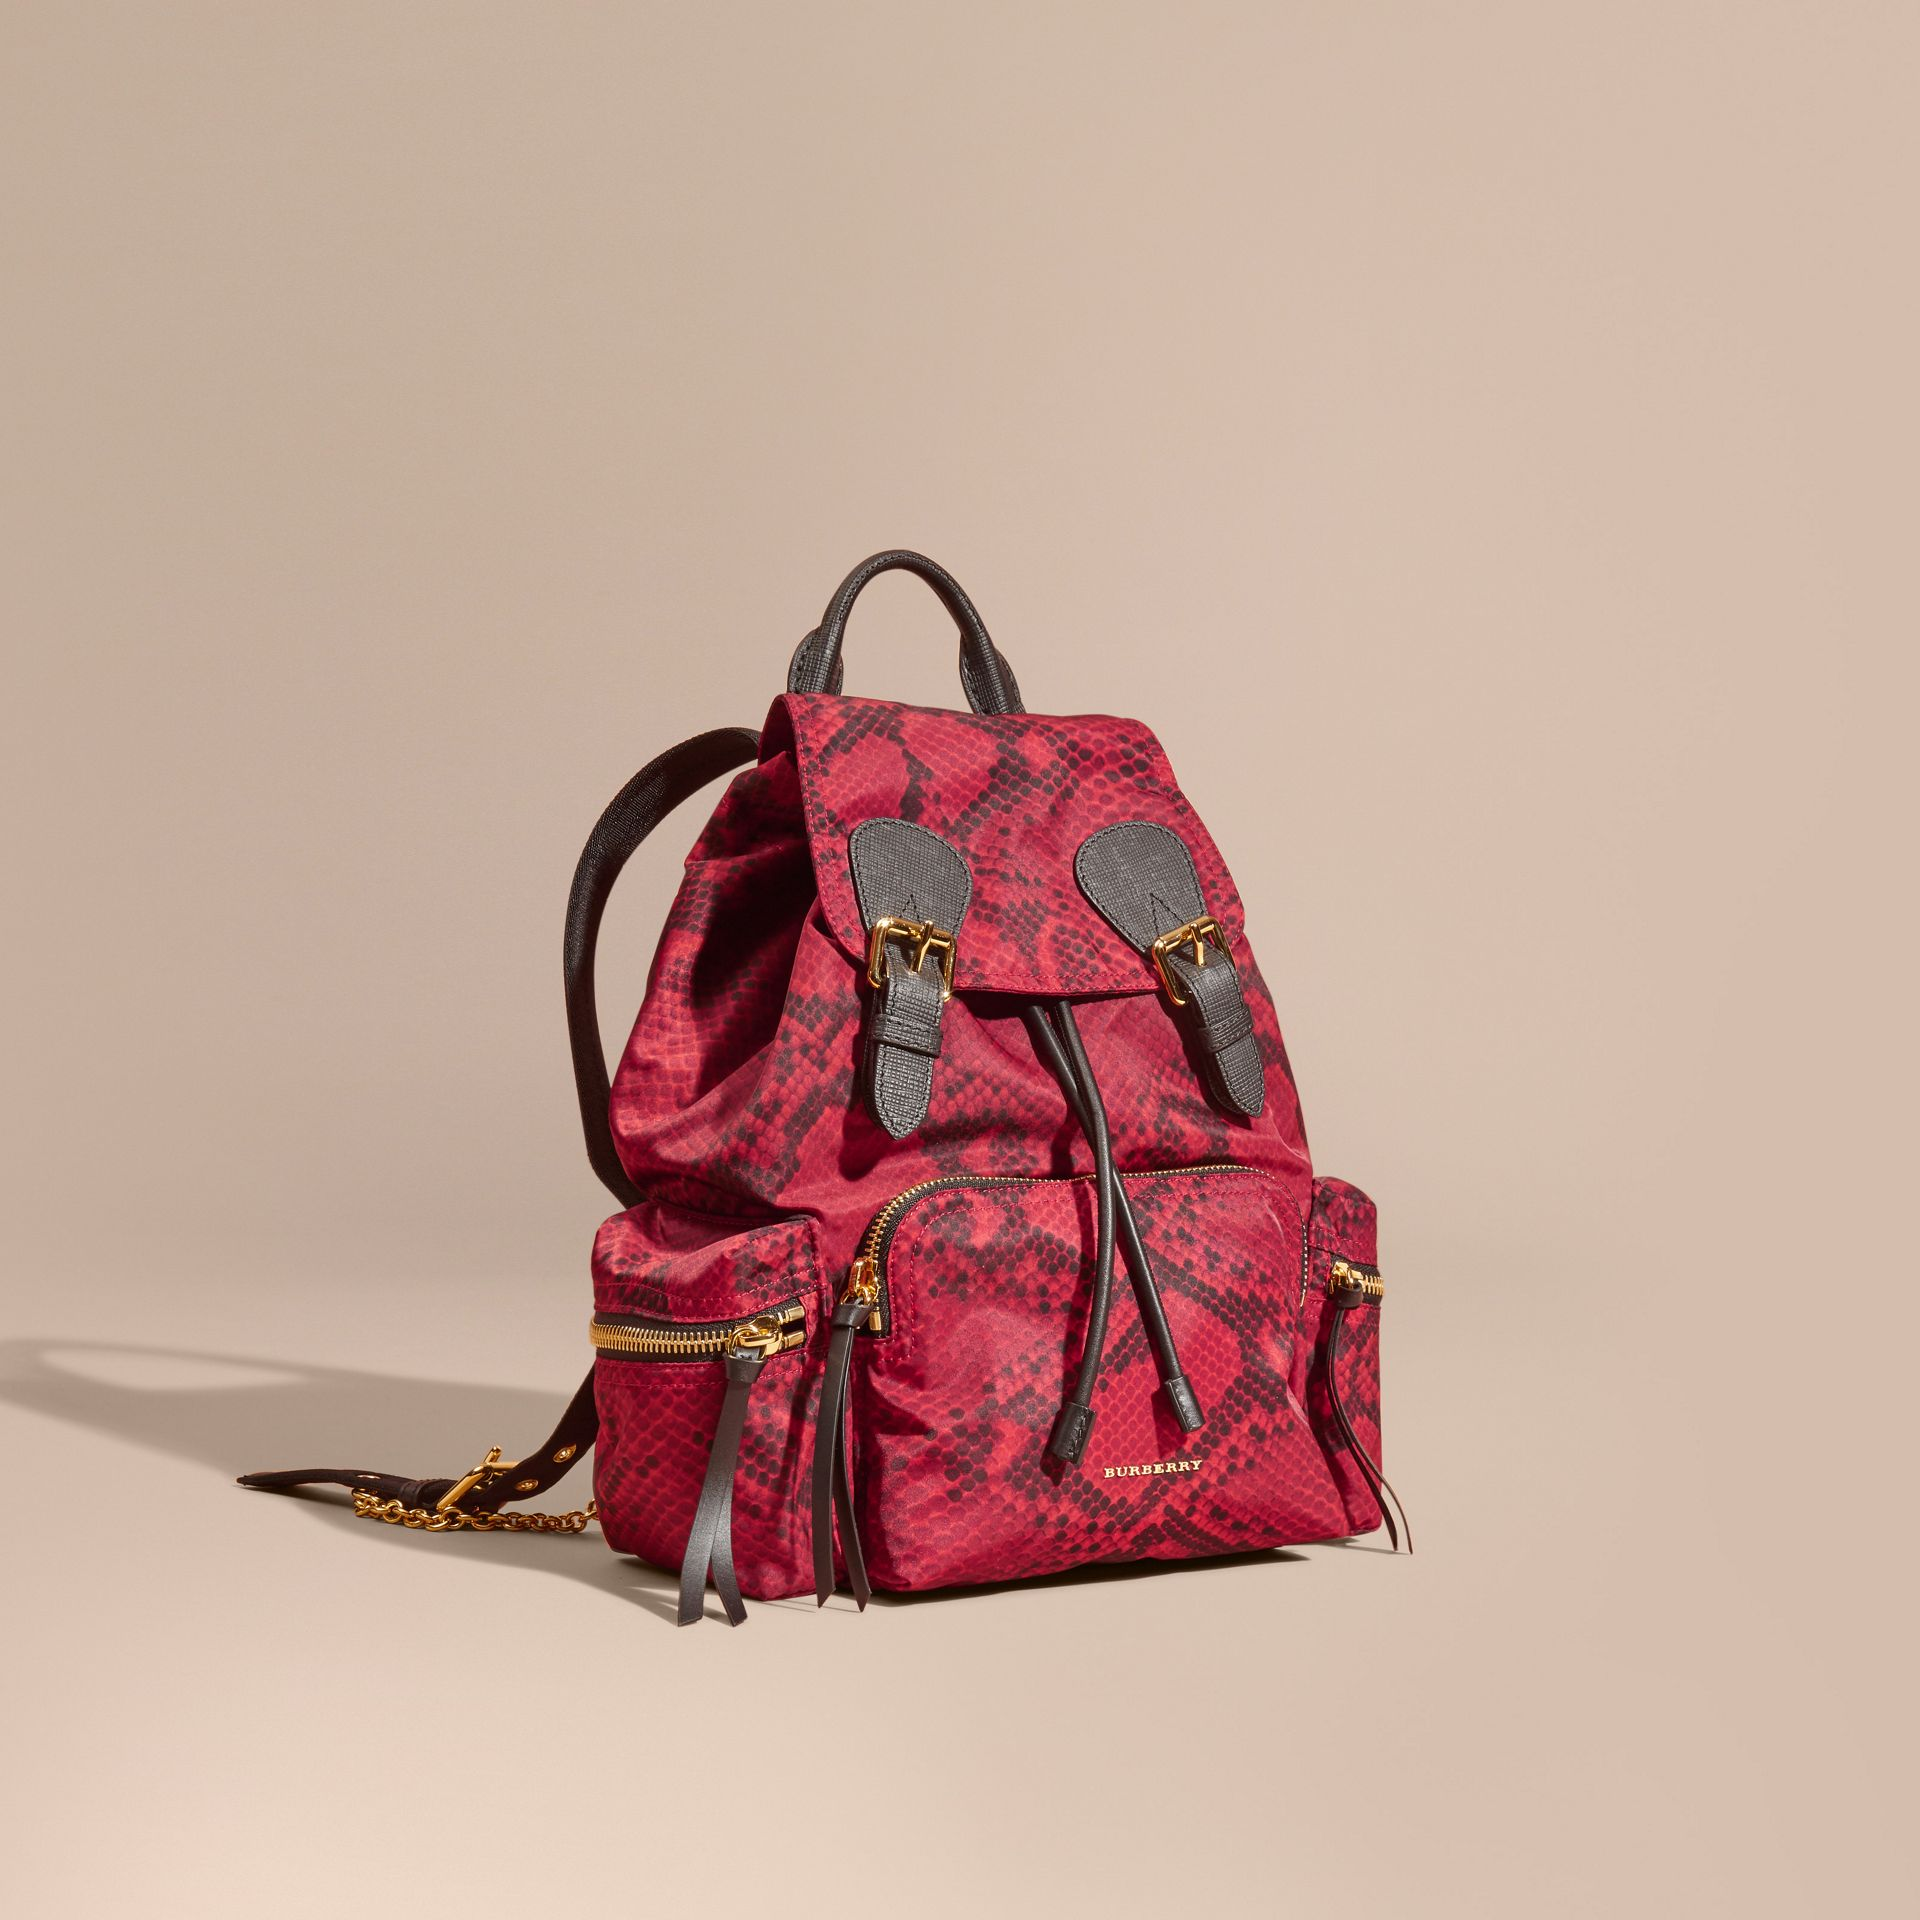 Burgundy red The Medium Rucksack in Python Print Nylon and Leather Burgundy Red - gallery image 1